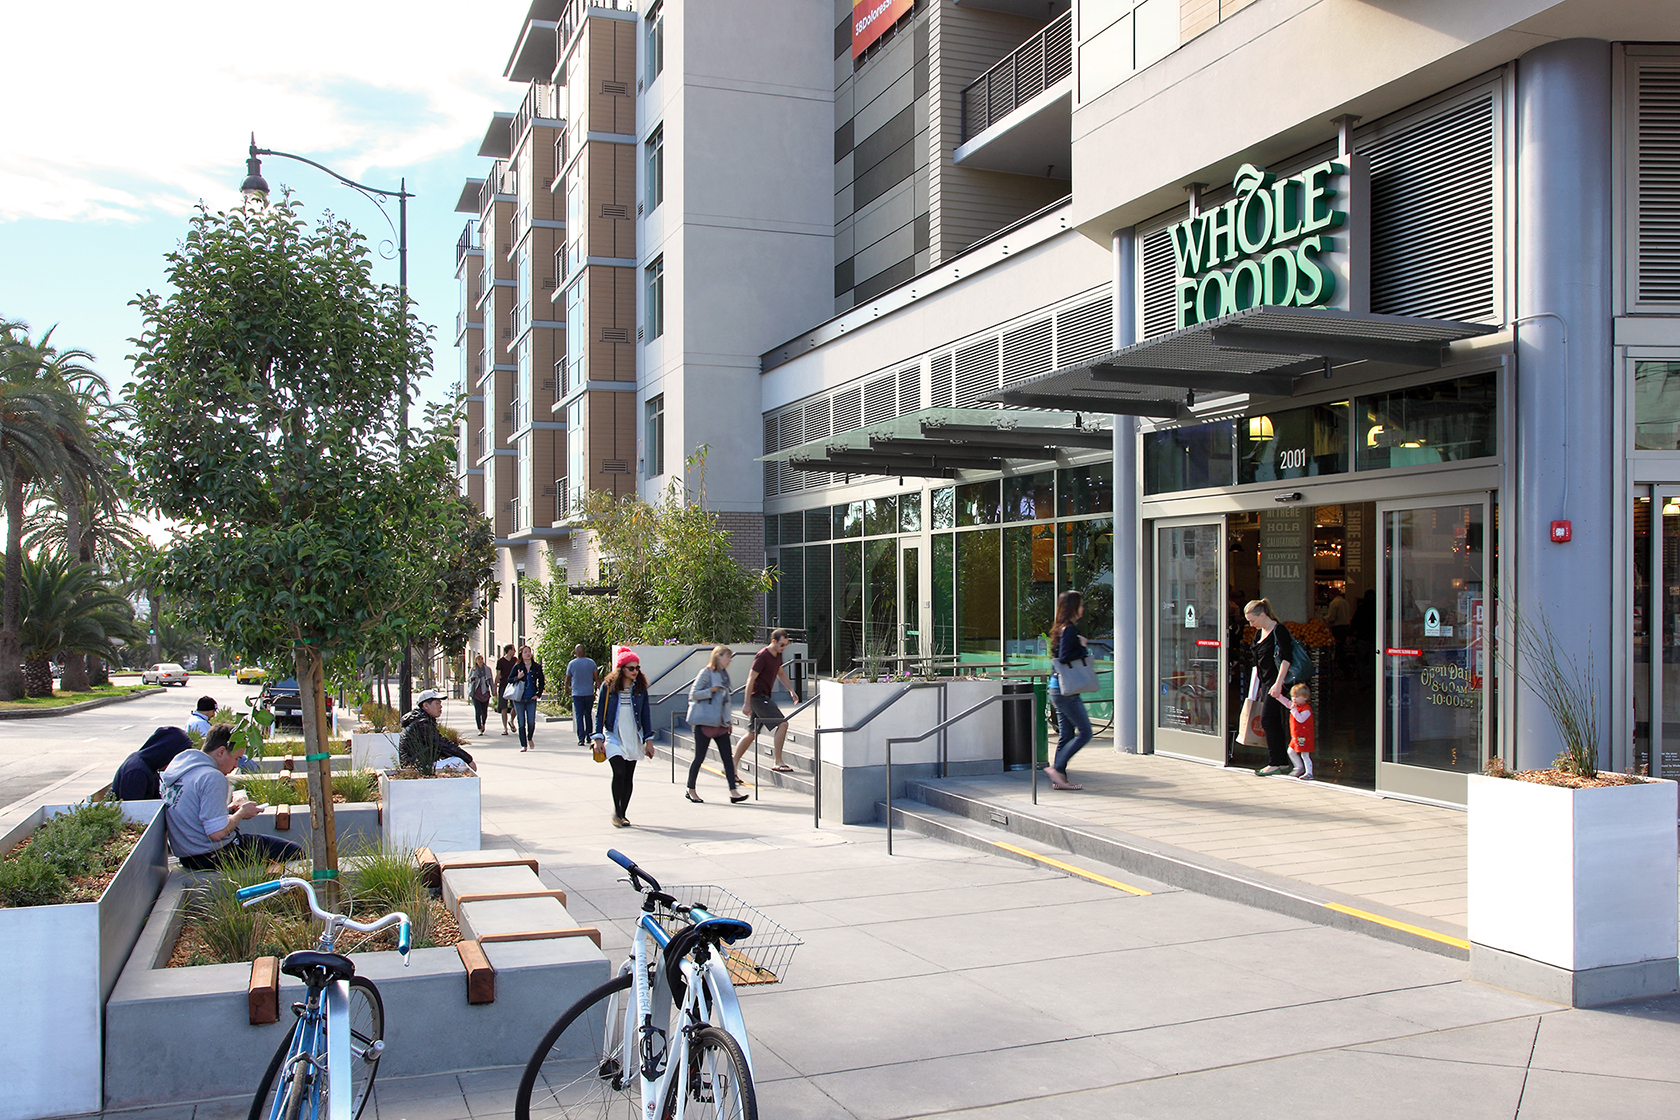 A Whole Foods supermarket offers healthy, organic groceries and a dine-in area.